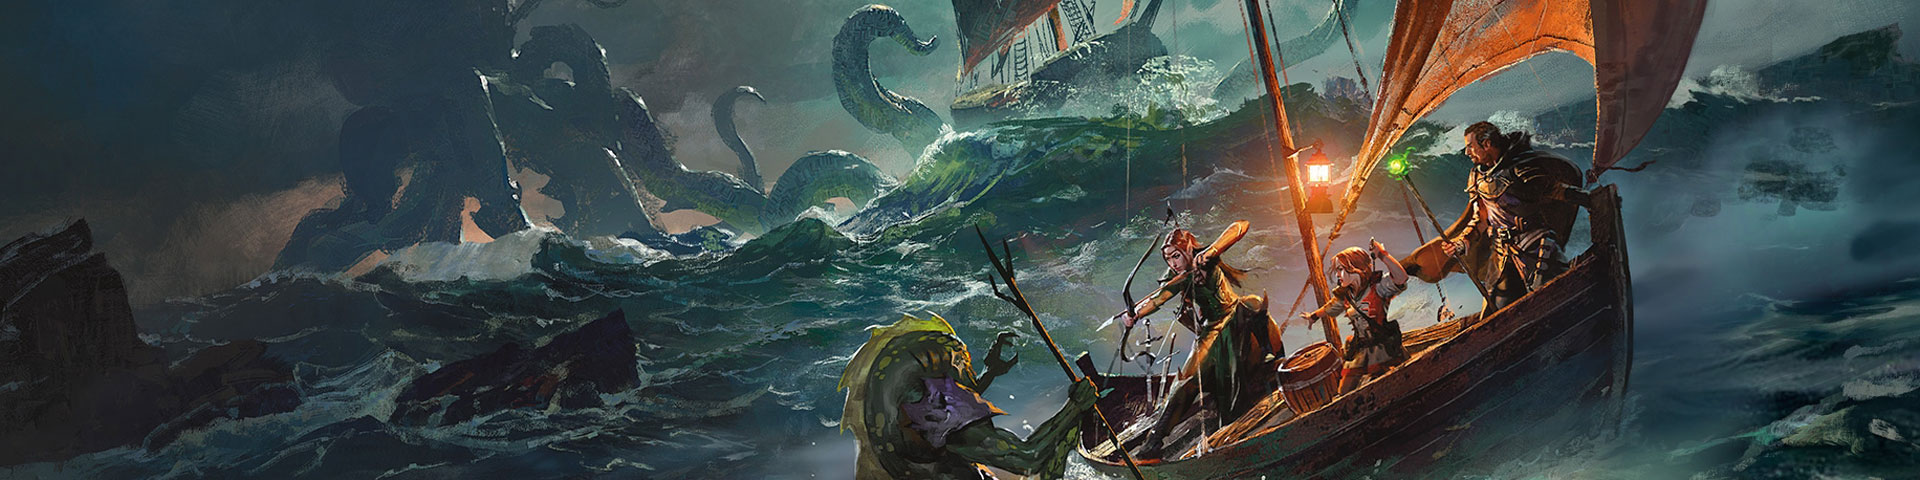 Adventurers battle an aquatic humanoid while a giant octopus attacks a sailing ship in the background.